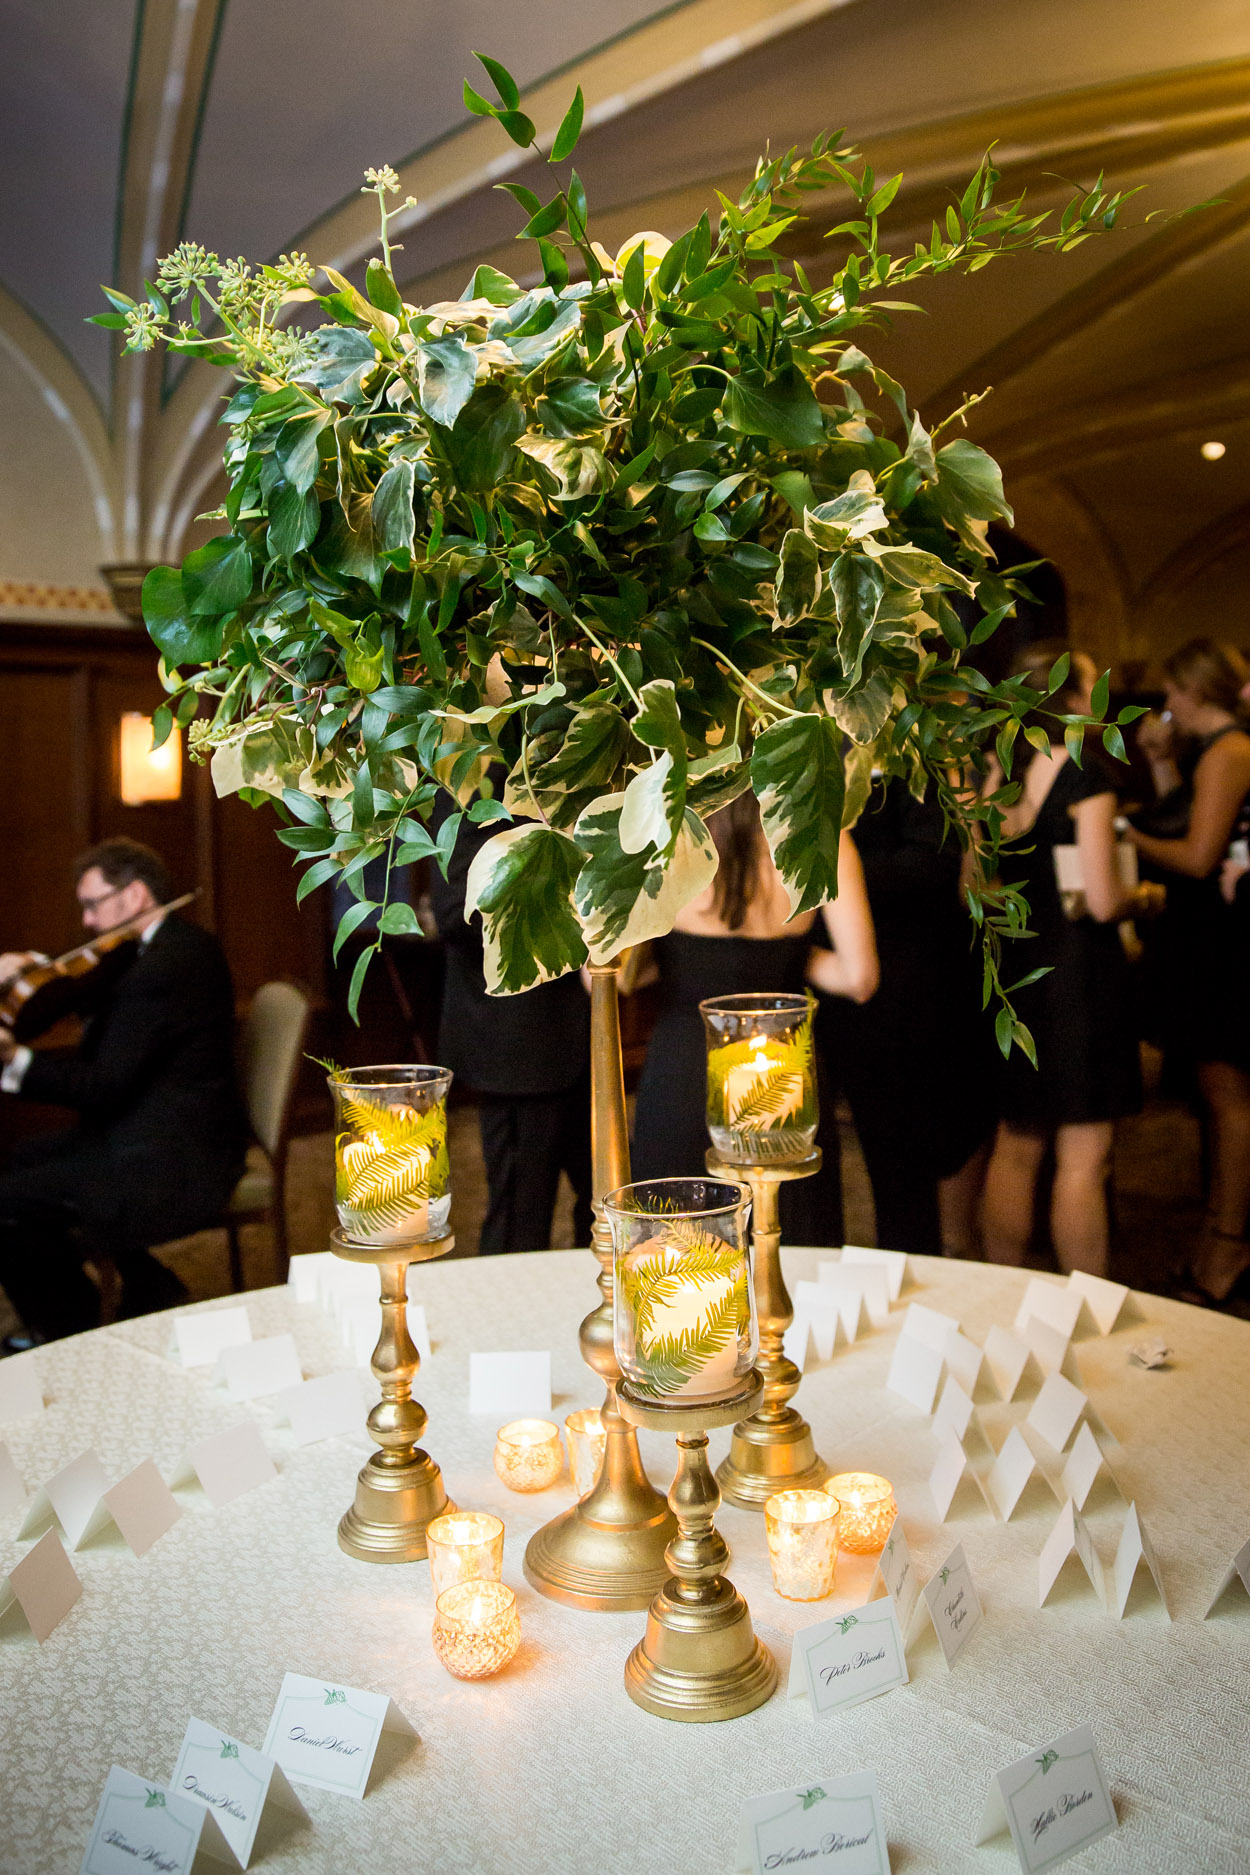 Wedding floral arrangements comprised only of greenery